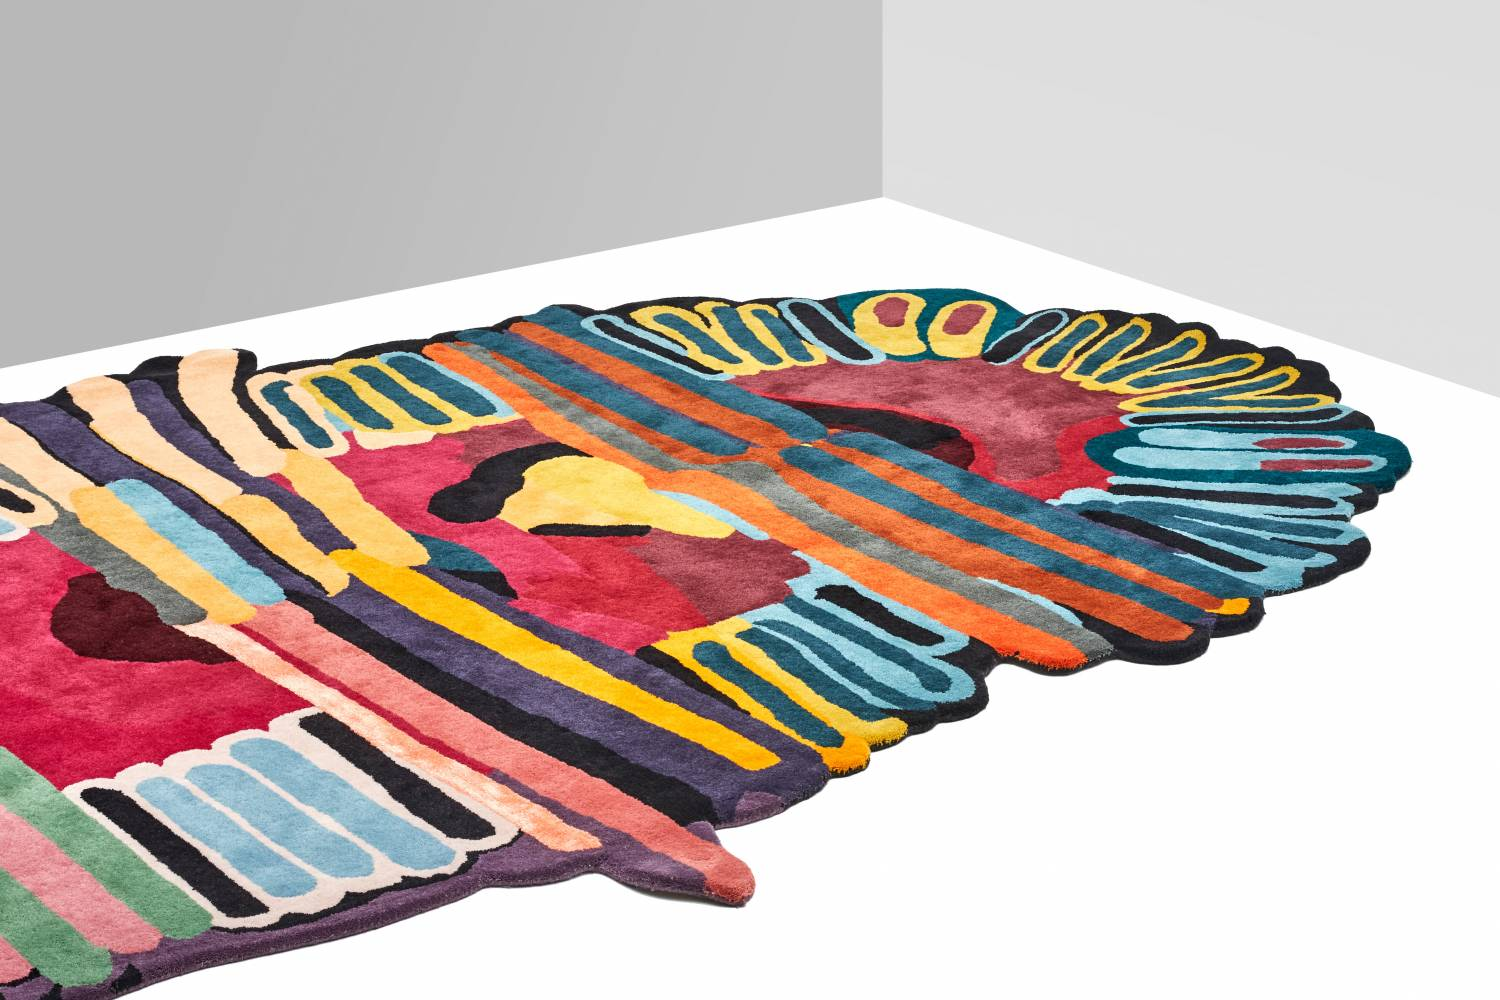 Tufty rug by Laureline Galliot | Flodeau.com